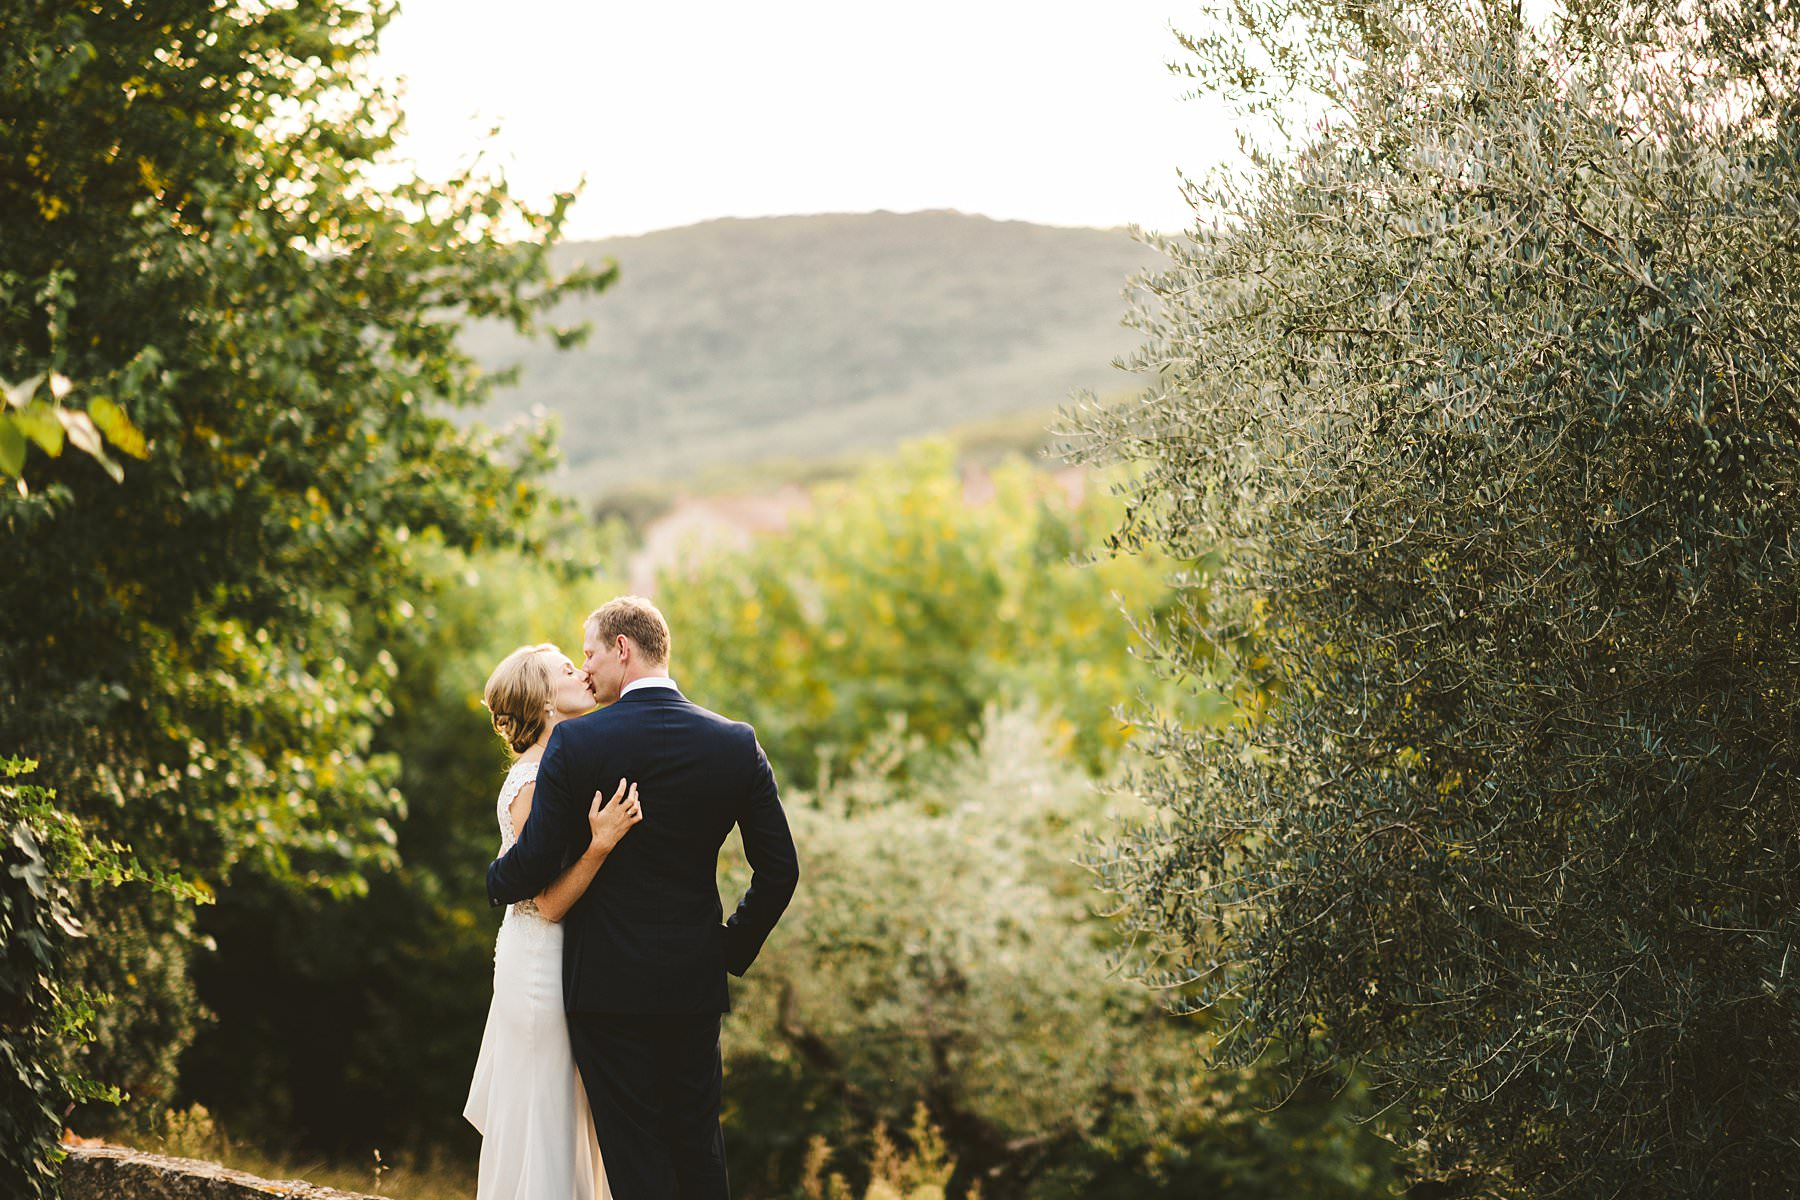 A special international wedding in the countryside of Umbria, Italy. Beautiful and elegant Australian dreaming couple portrait around the property of Villa Monte Solare, a historic residence tucked in the countryside among rolling hills. The settings were countryside landscapes with cypress lines, olive groves and a stunning wall covered in red ivy leaves